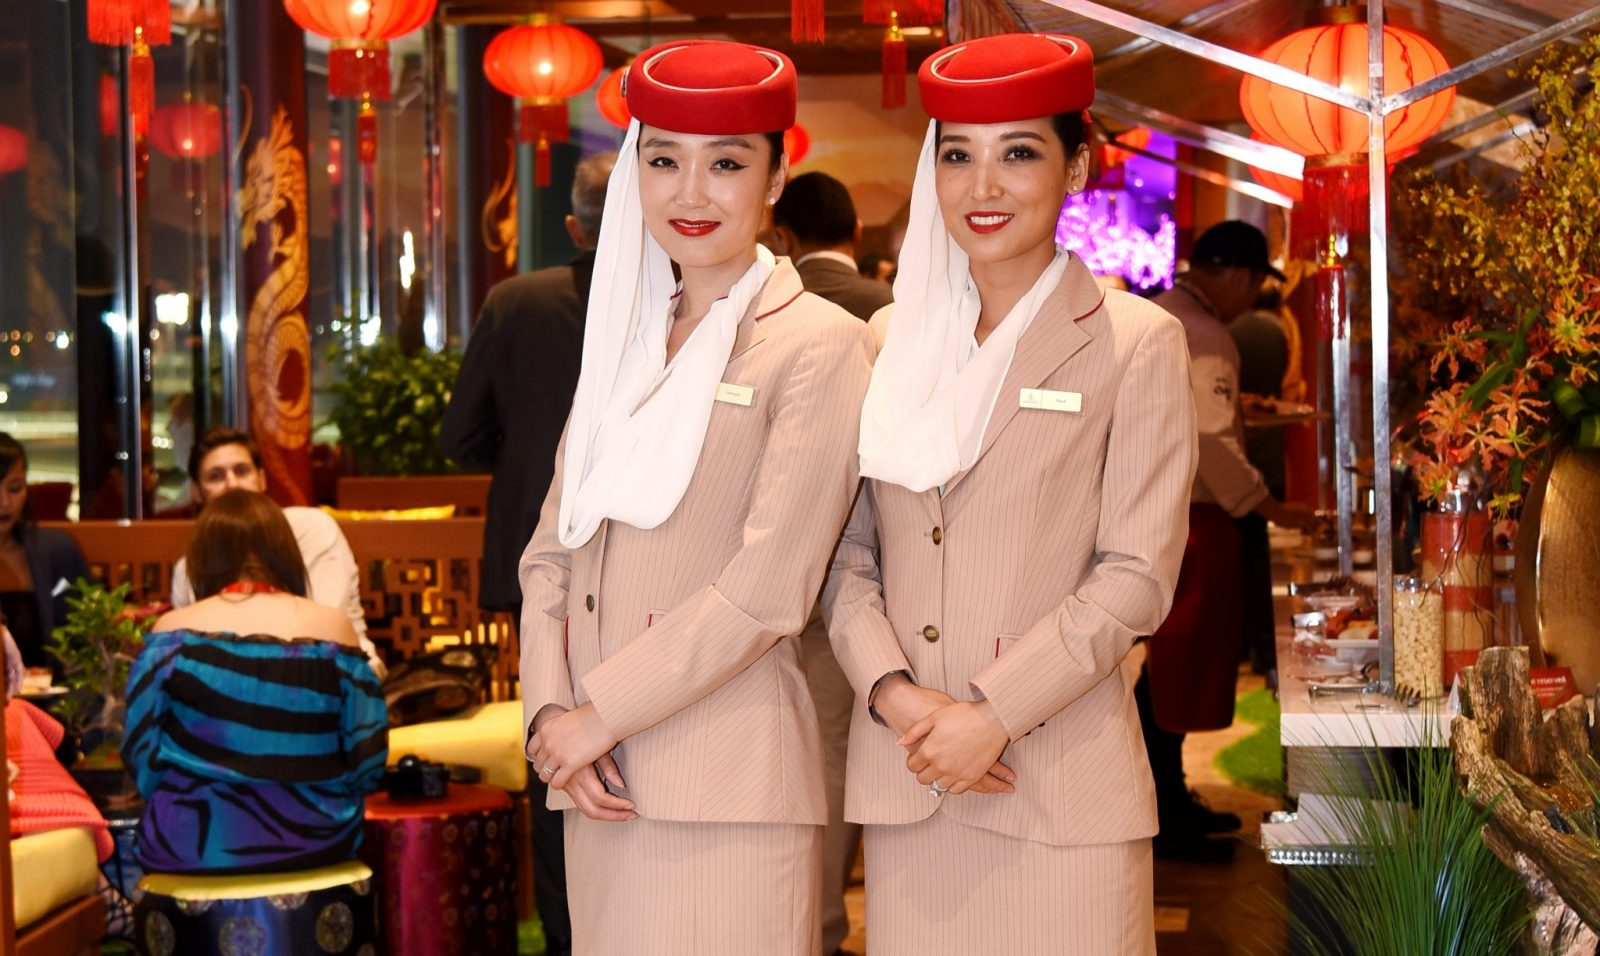 This is How Emirates Withdrew a Job Offer to Hundreds of Hopeful Cabin Crew